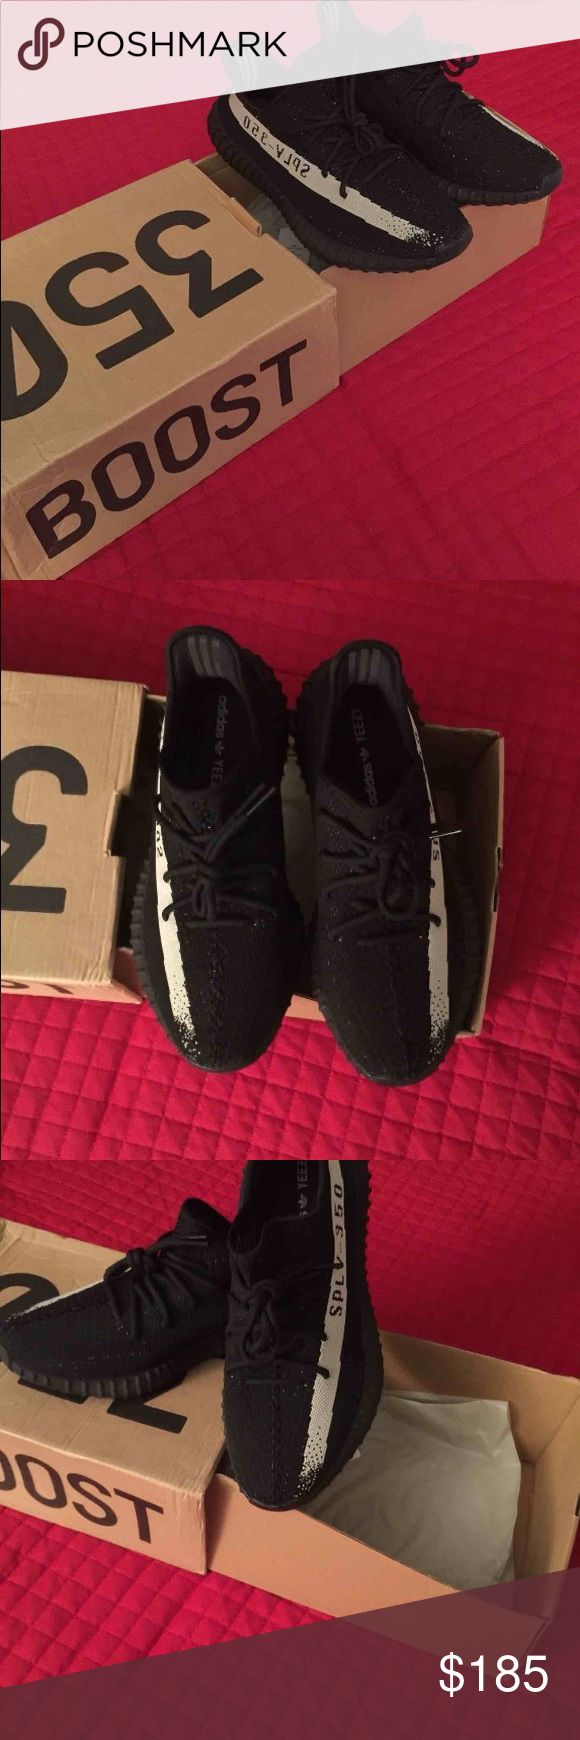 Adidas Yeezy Oreos *Read Description* These are 1:1 UA's. Literally stitch for stitch, and they're a fraction of the price. Comes with the original box. If you want yeezys but not yeezy money these are for you. In the Listing you get the zebras with the actual black light. Size 9.5/10. COMMENT IF YOU WANT ANOTHER SIZE. Yeezy Shoes Sneakers